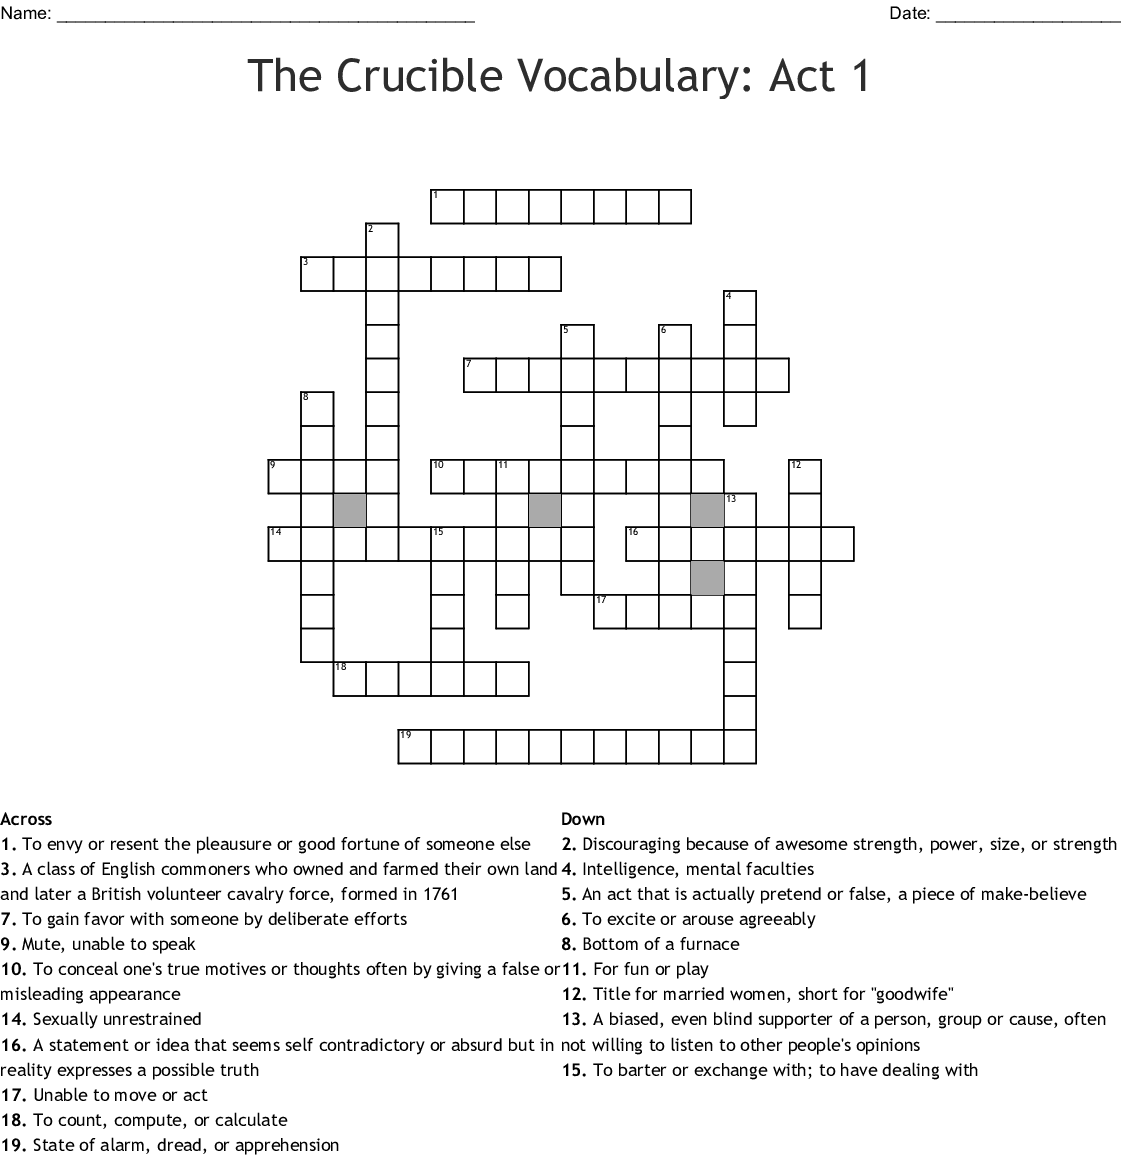 The Crucible Vocabulary Act 1 Worksheet Answers